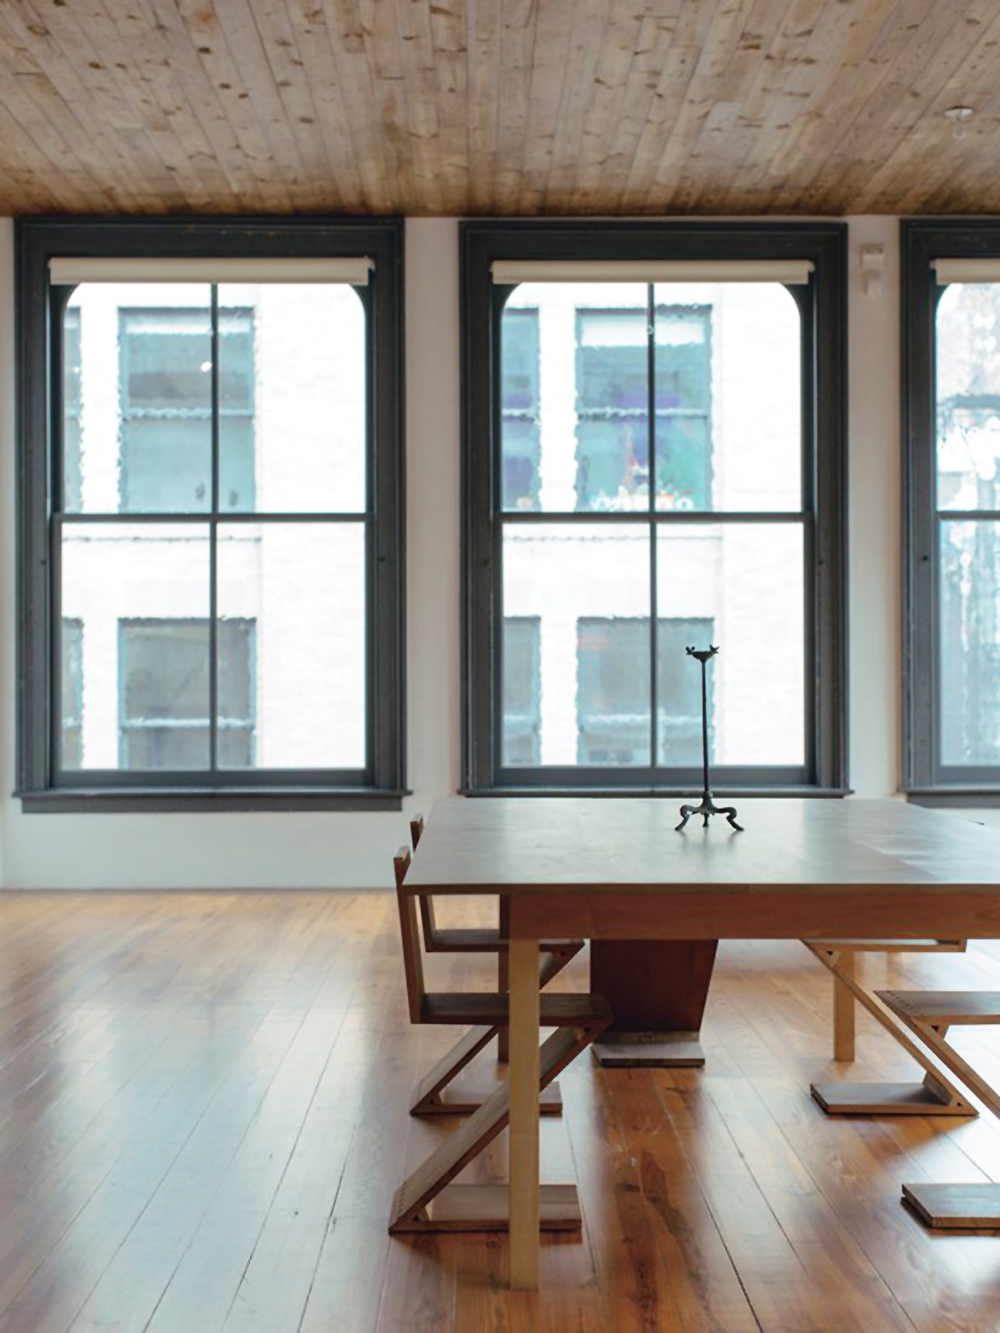 Donald Judd, Judd Foundation, interiors, sunday sanctuary, oracle fox, dining room, dining table